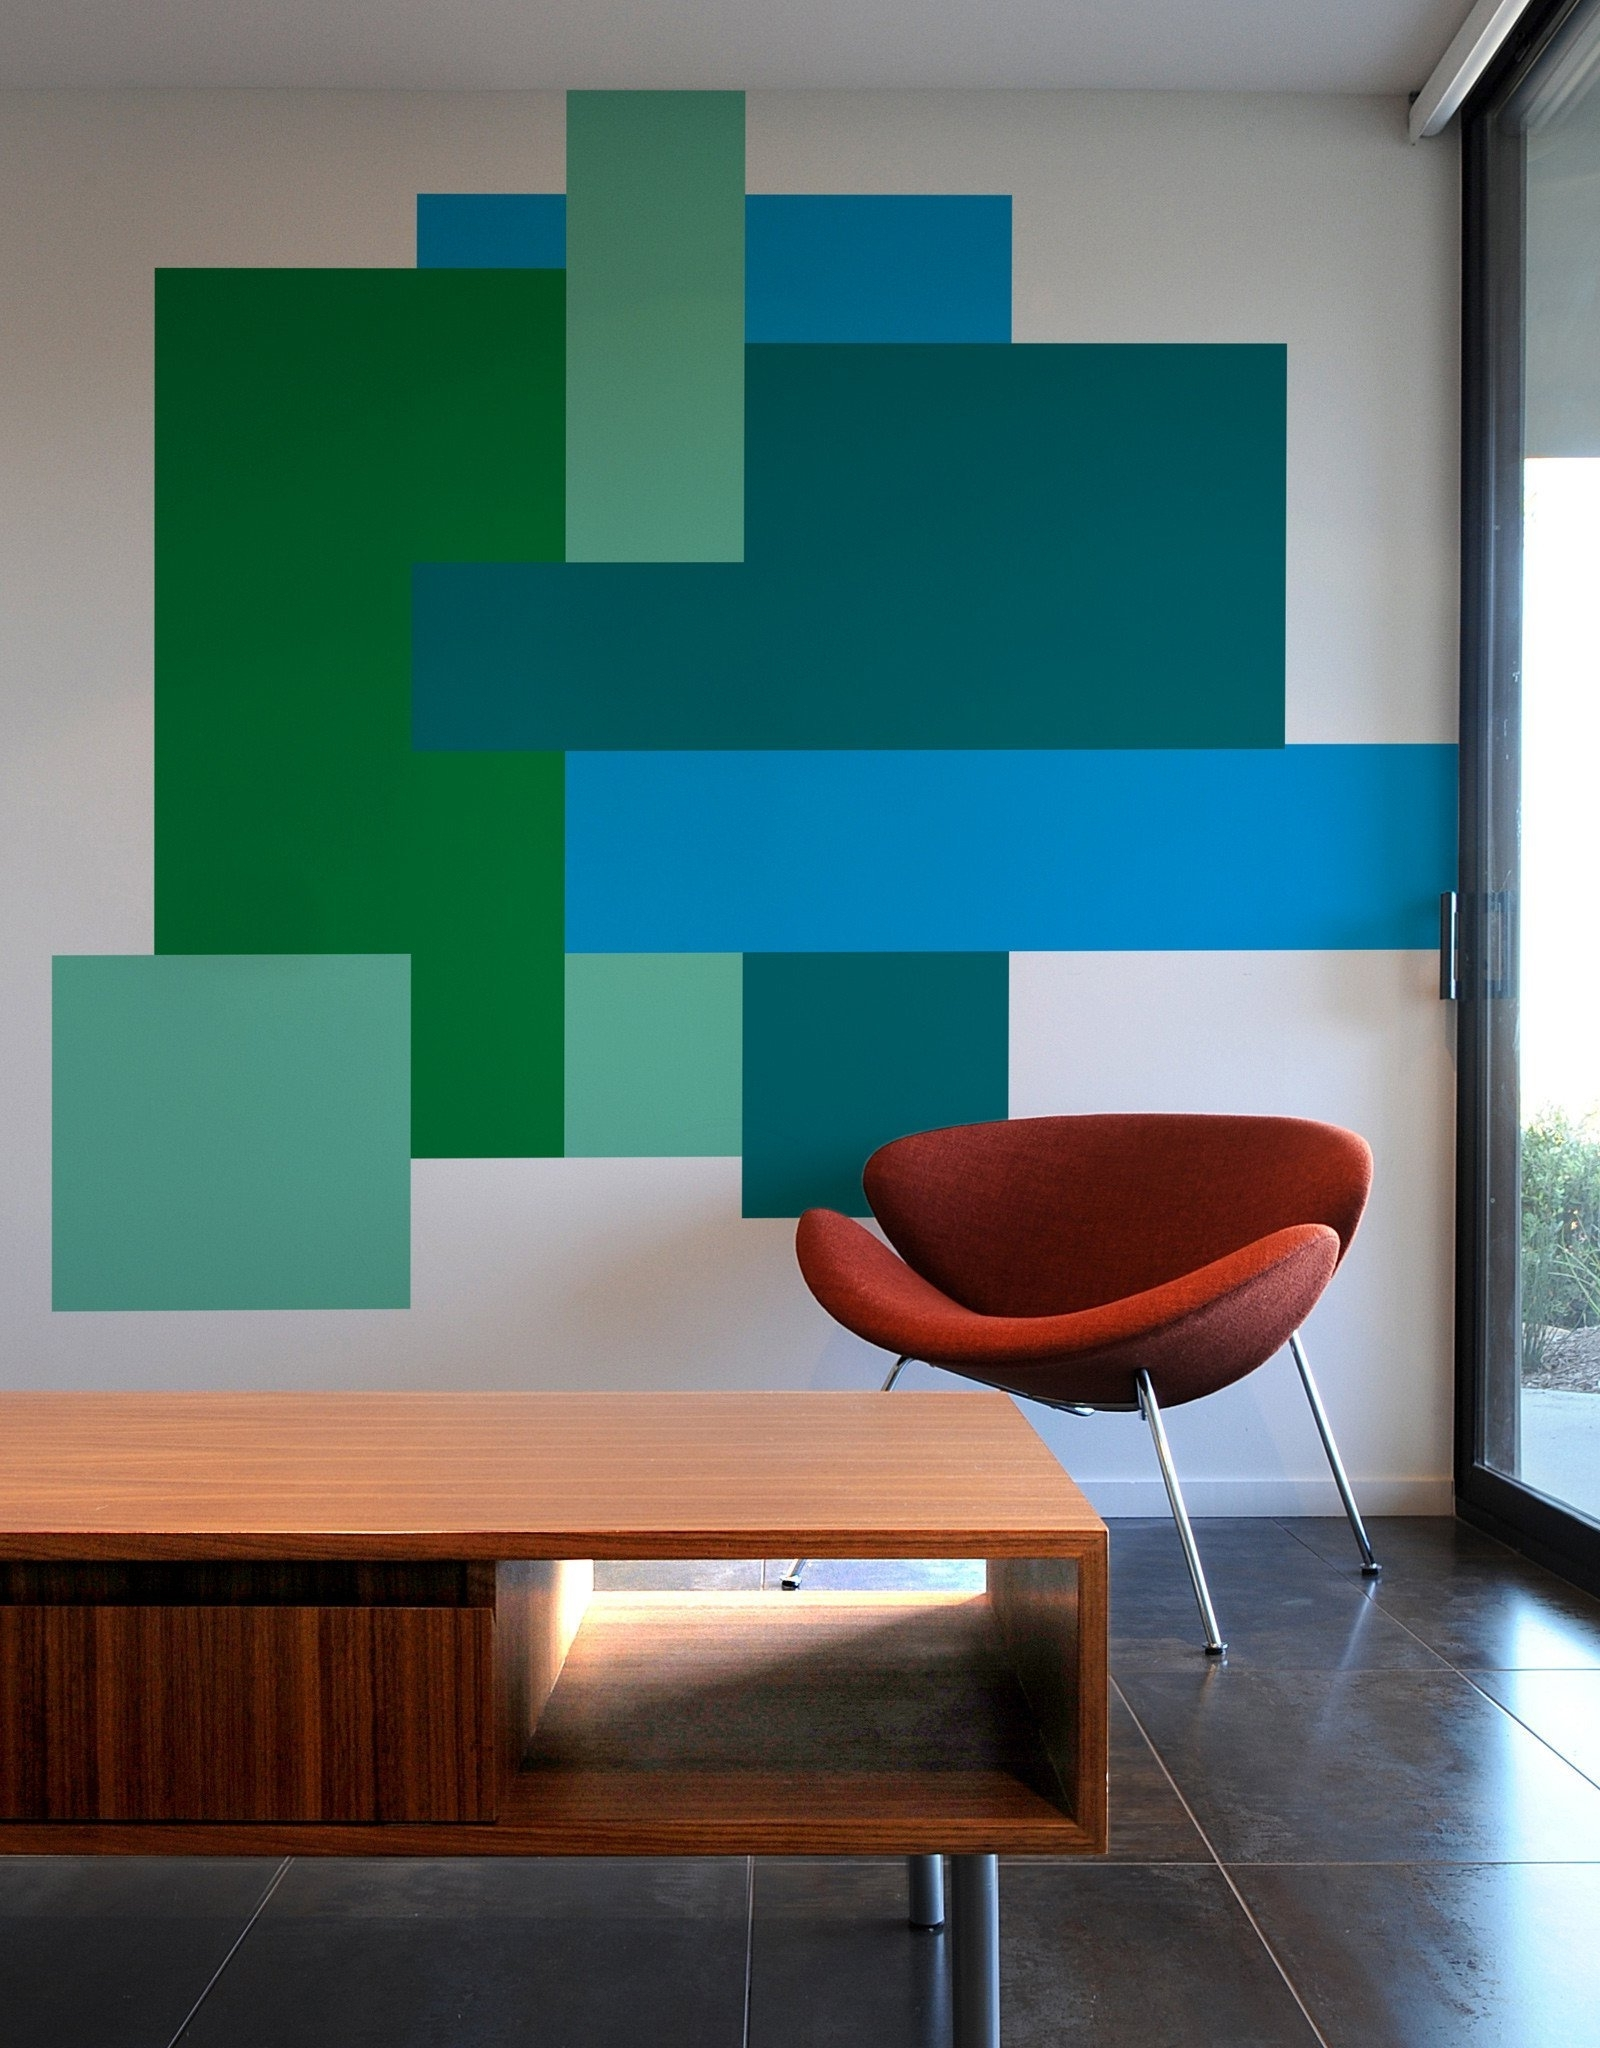 Unbelievable Color Block Wall Art Self Adhesive Vinyl Stickers Inside Popular Blik Wall Art (Gallery 12 of 15)